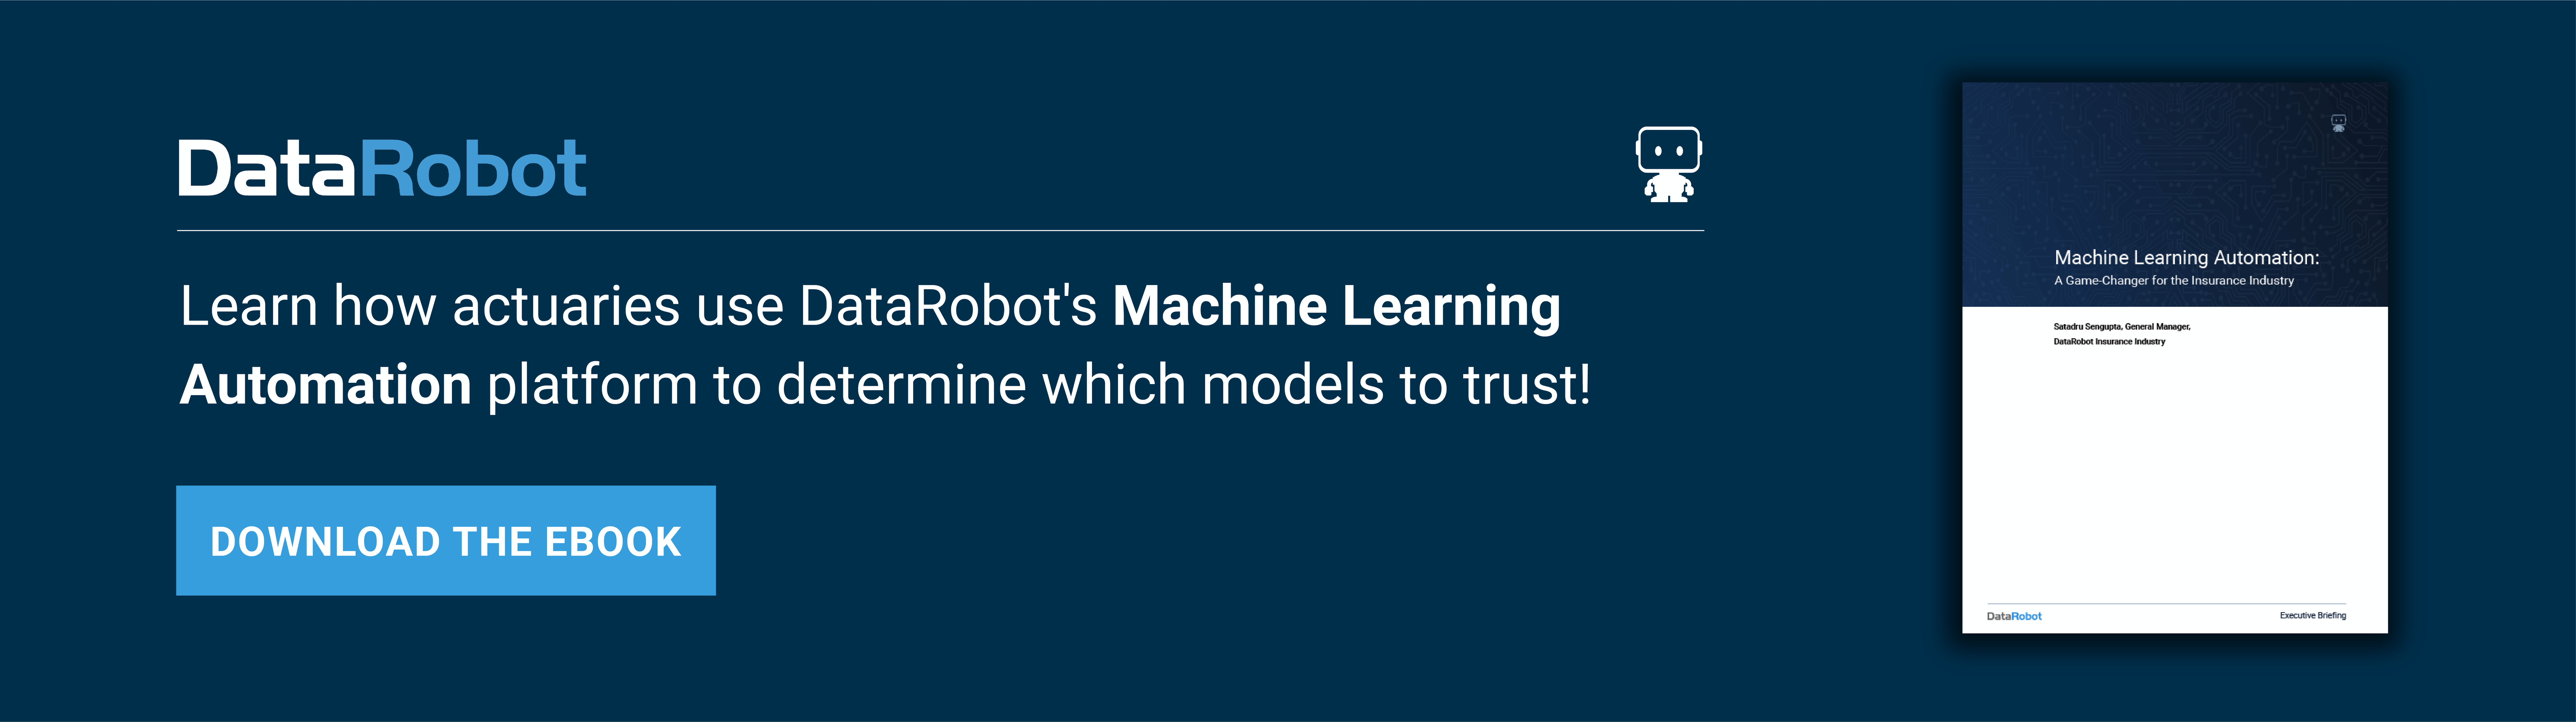 https://www.datarobot.com/resources/insurance-executive-brief/?cta_id=do-actuarial-models-trust-the-data-too-much&cta_position=post-blog